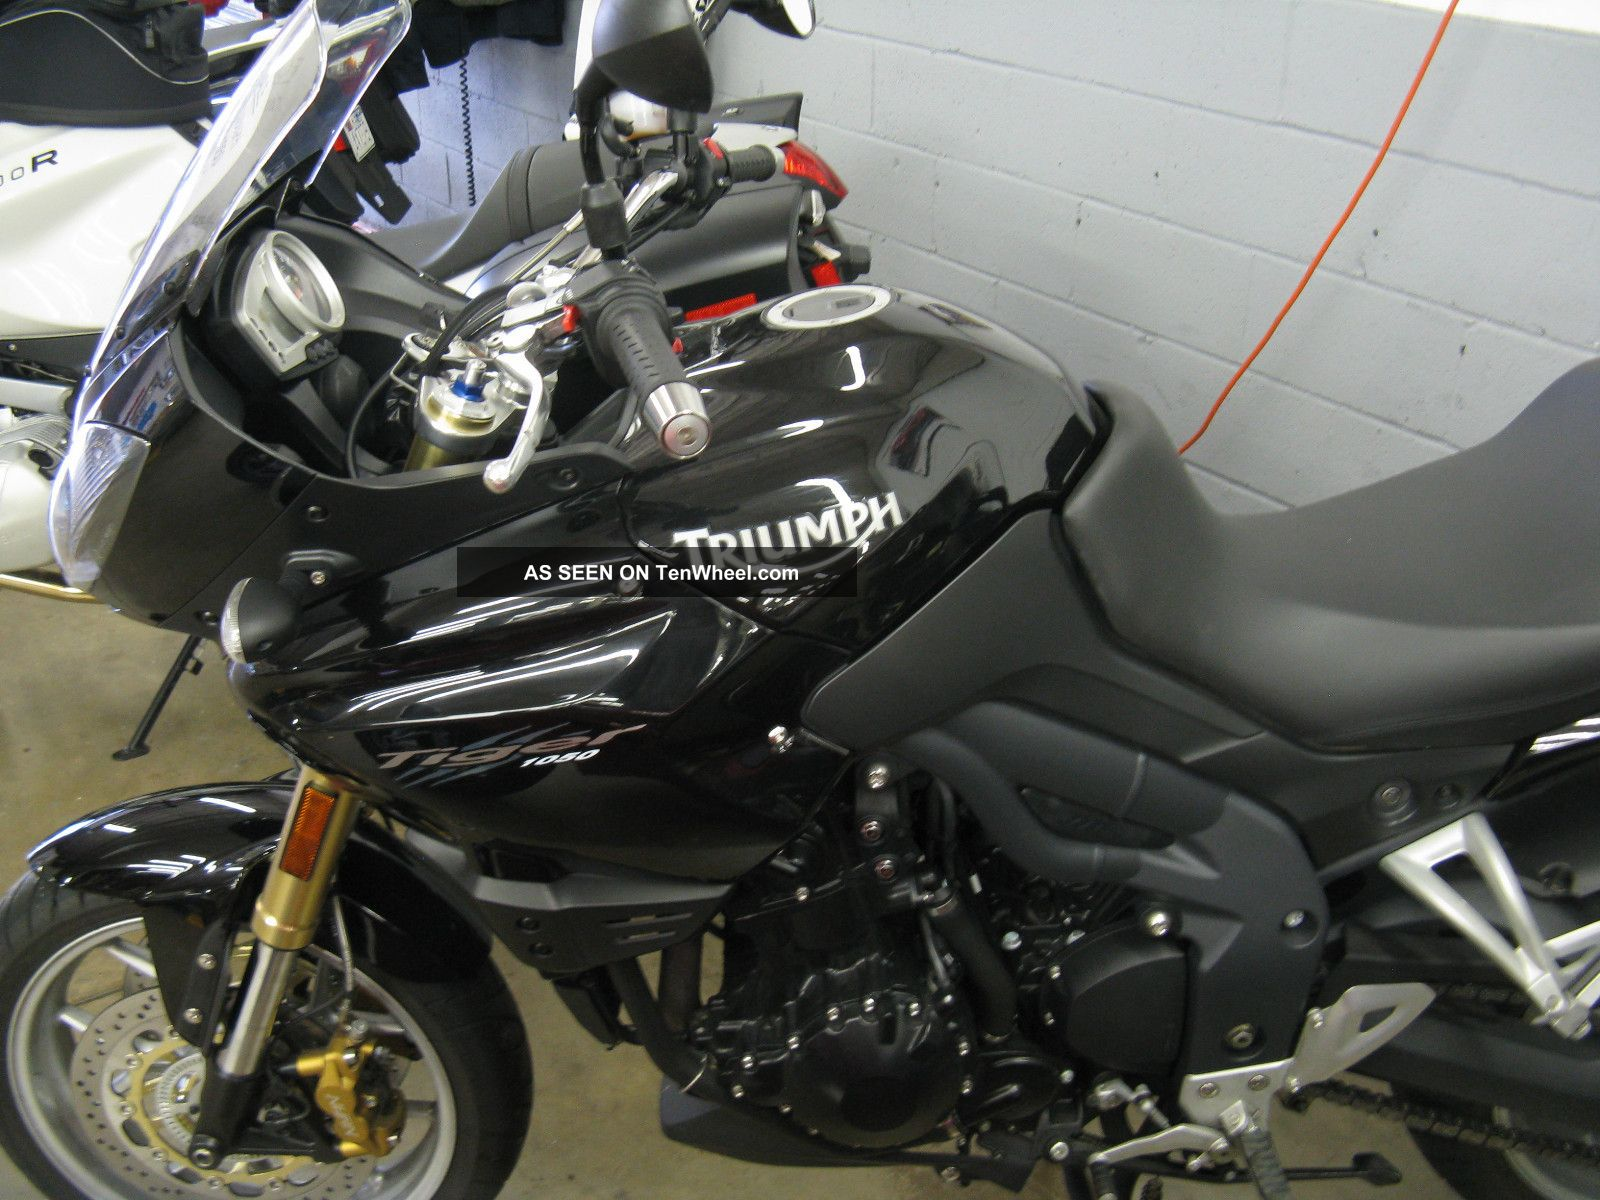 2010 Triumph Tiger 1050 - Abs Model Tiger photo